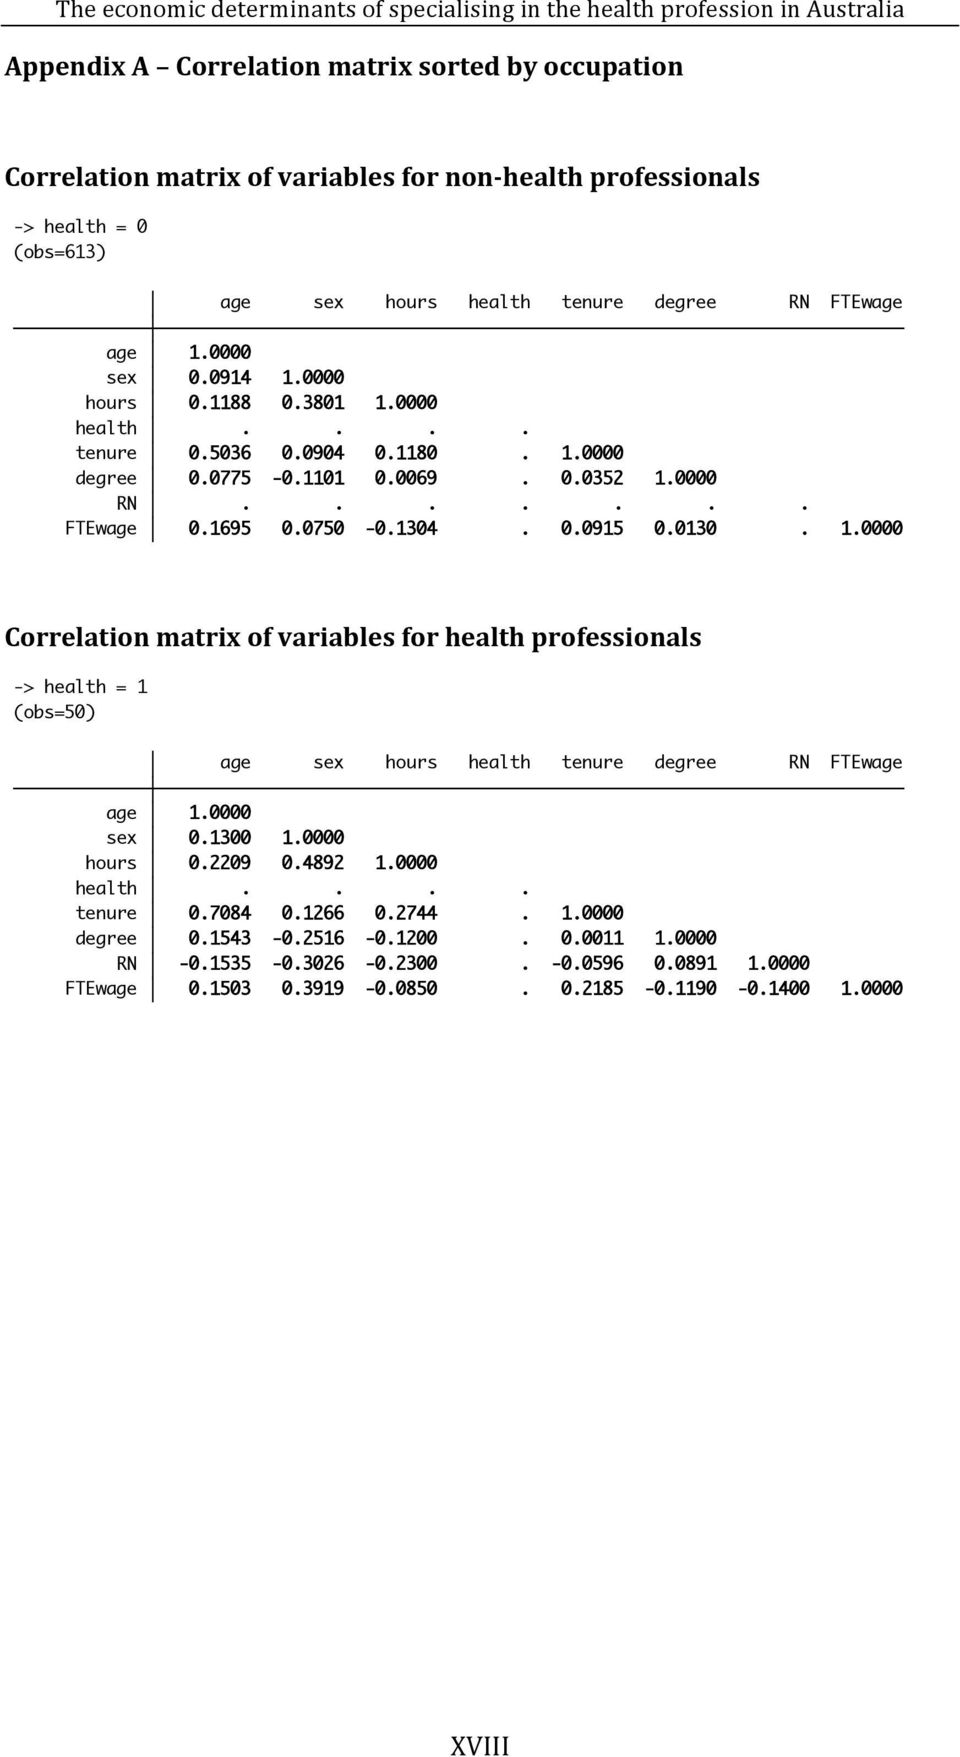 1.0000 Correlation matrix of variables for health professionals -> health = 1 (obs=50) age sex hours health tenure degree RN FTEwage age 1.0000 sex 0.1300 1.0000 hours 0.2209 0.4892 1.